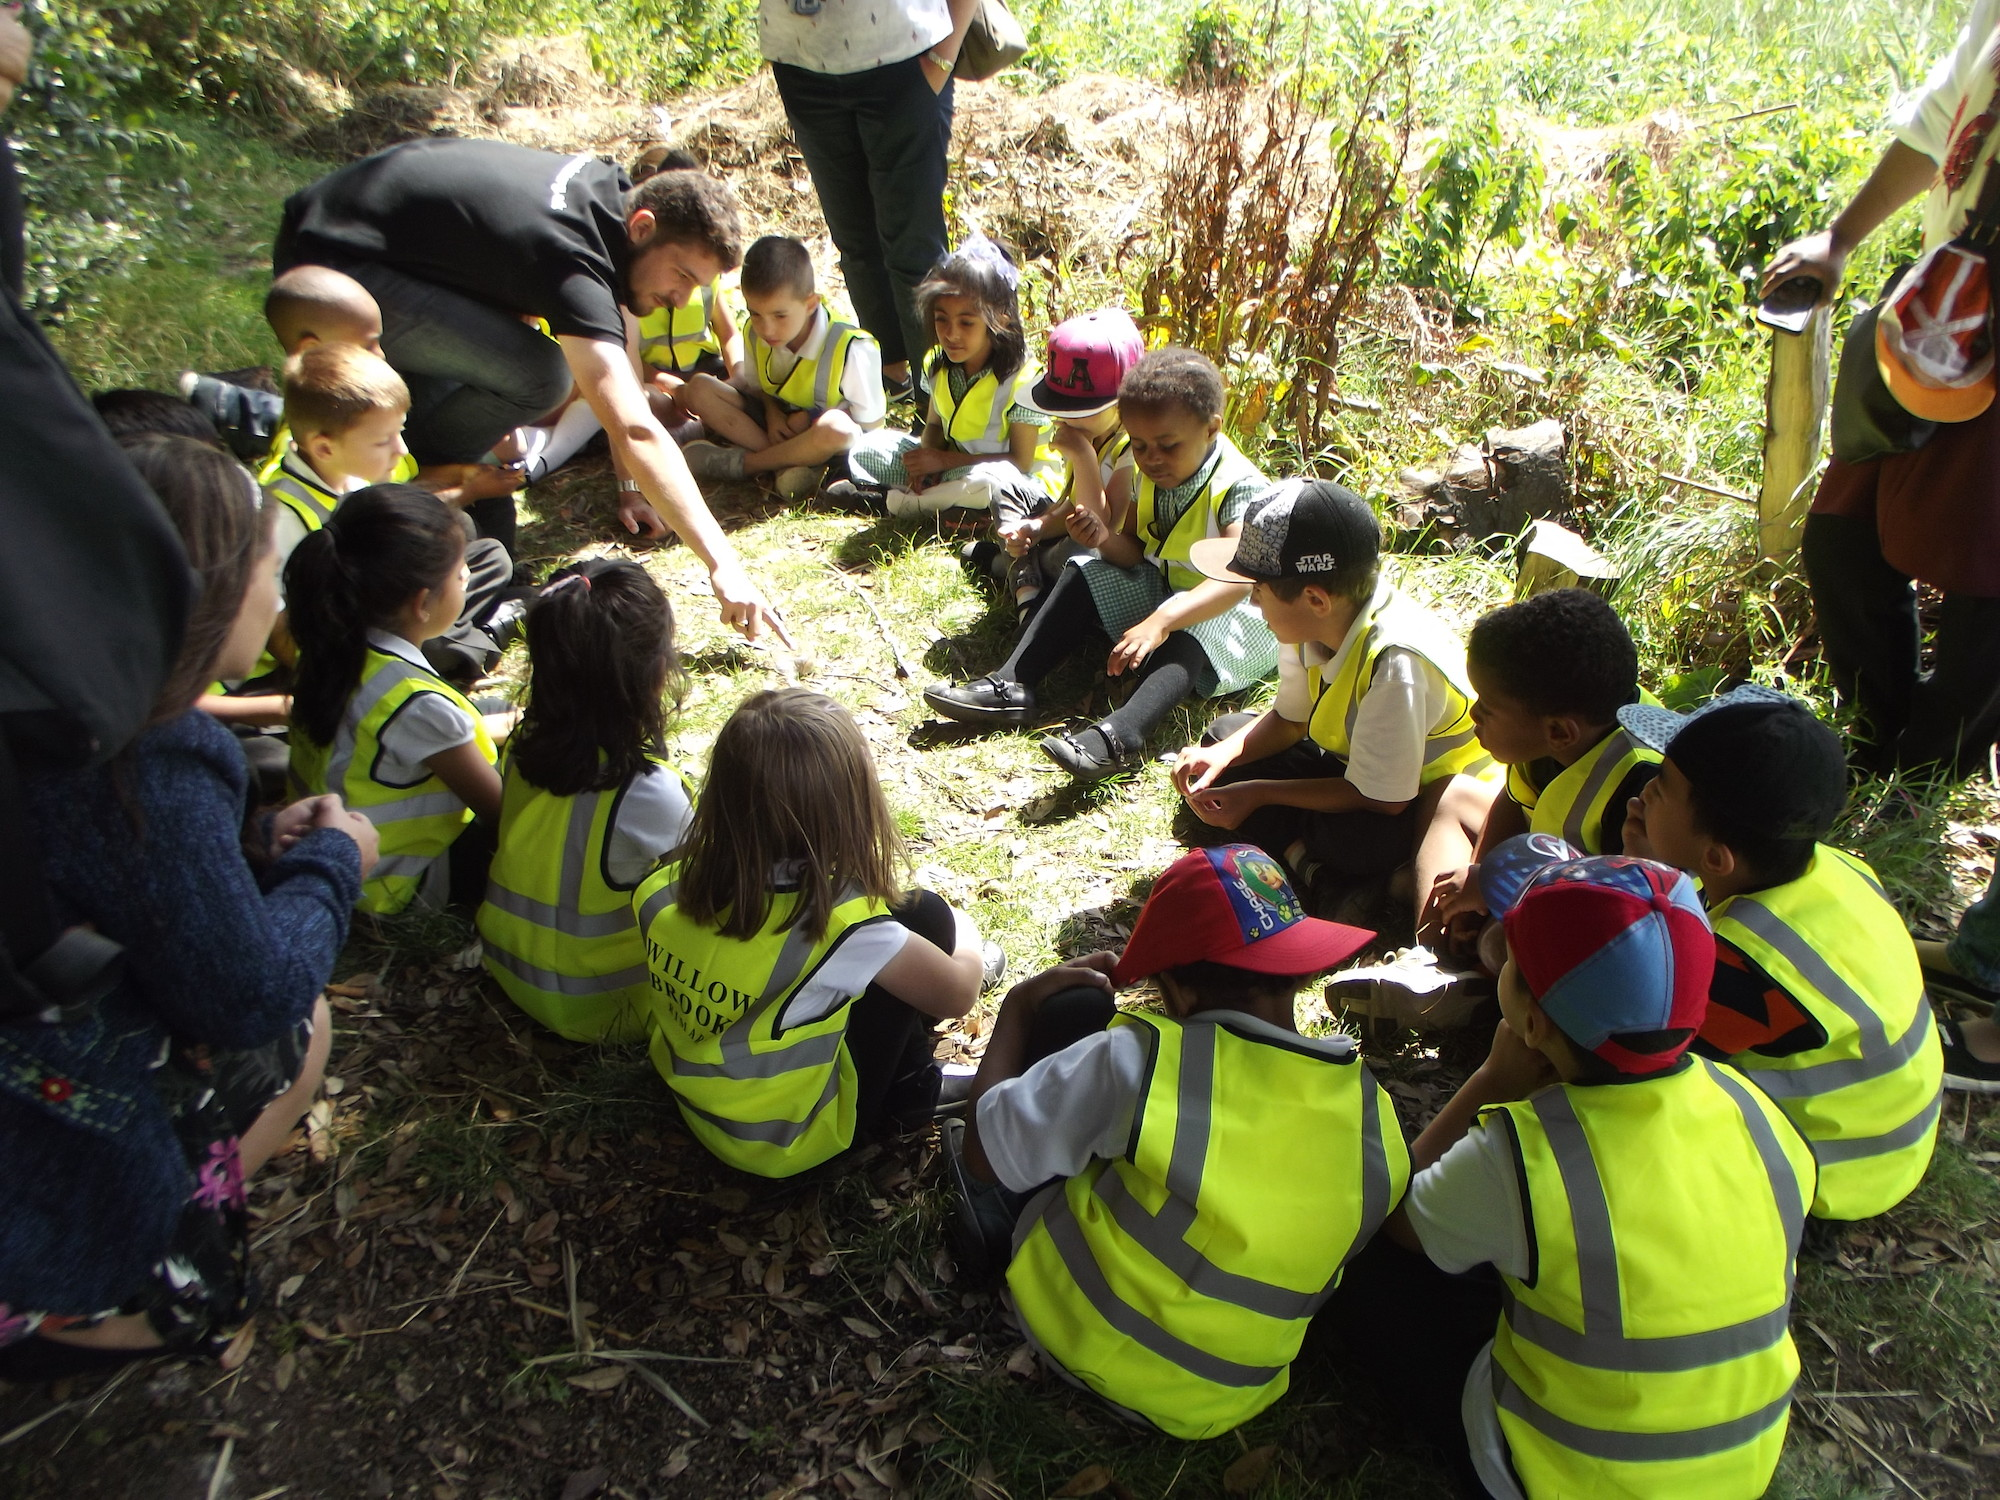 London Wildlife Trust will provide exciting and inspirational outdoor nature lessons for more than 5,000 urban school children during 2018.